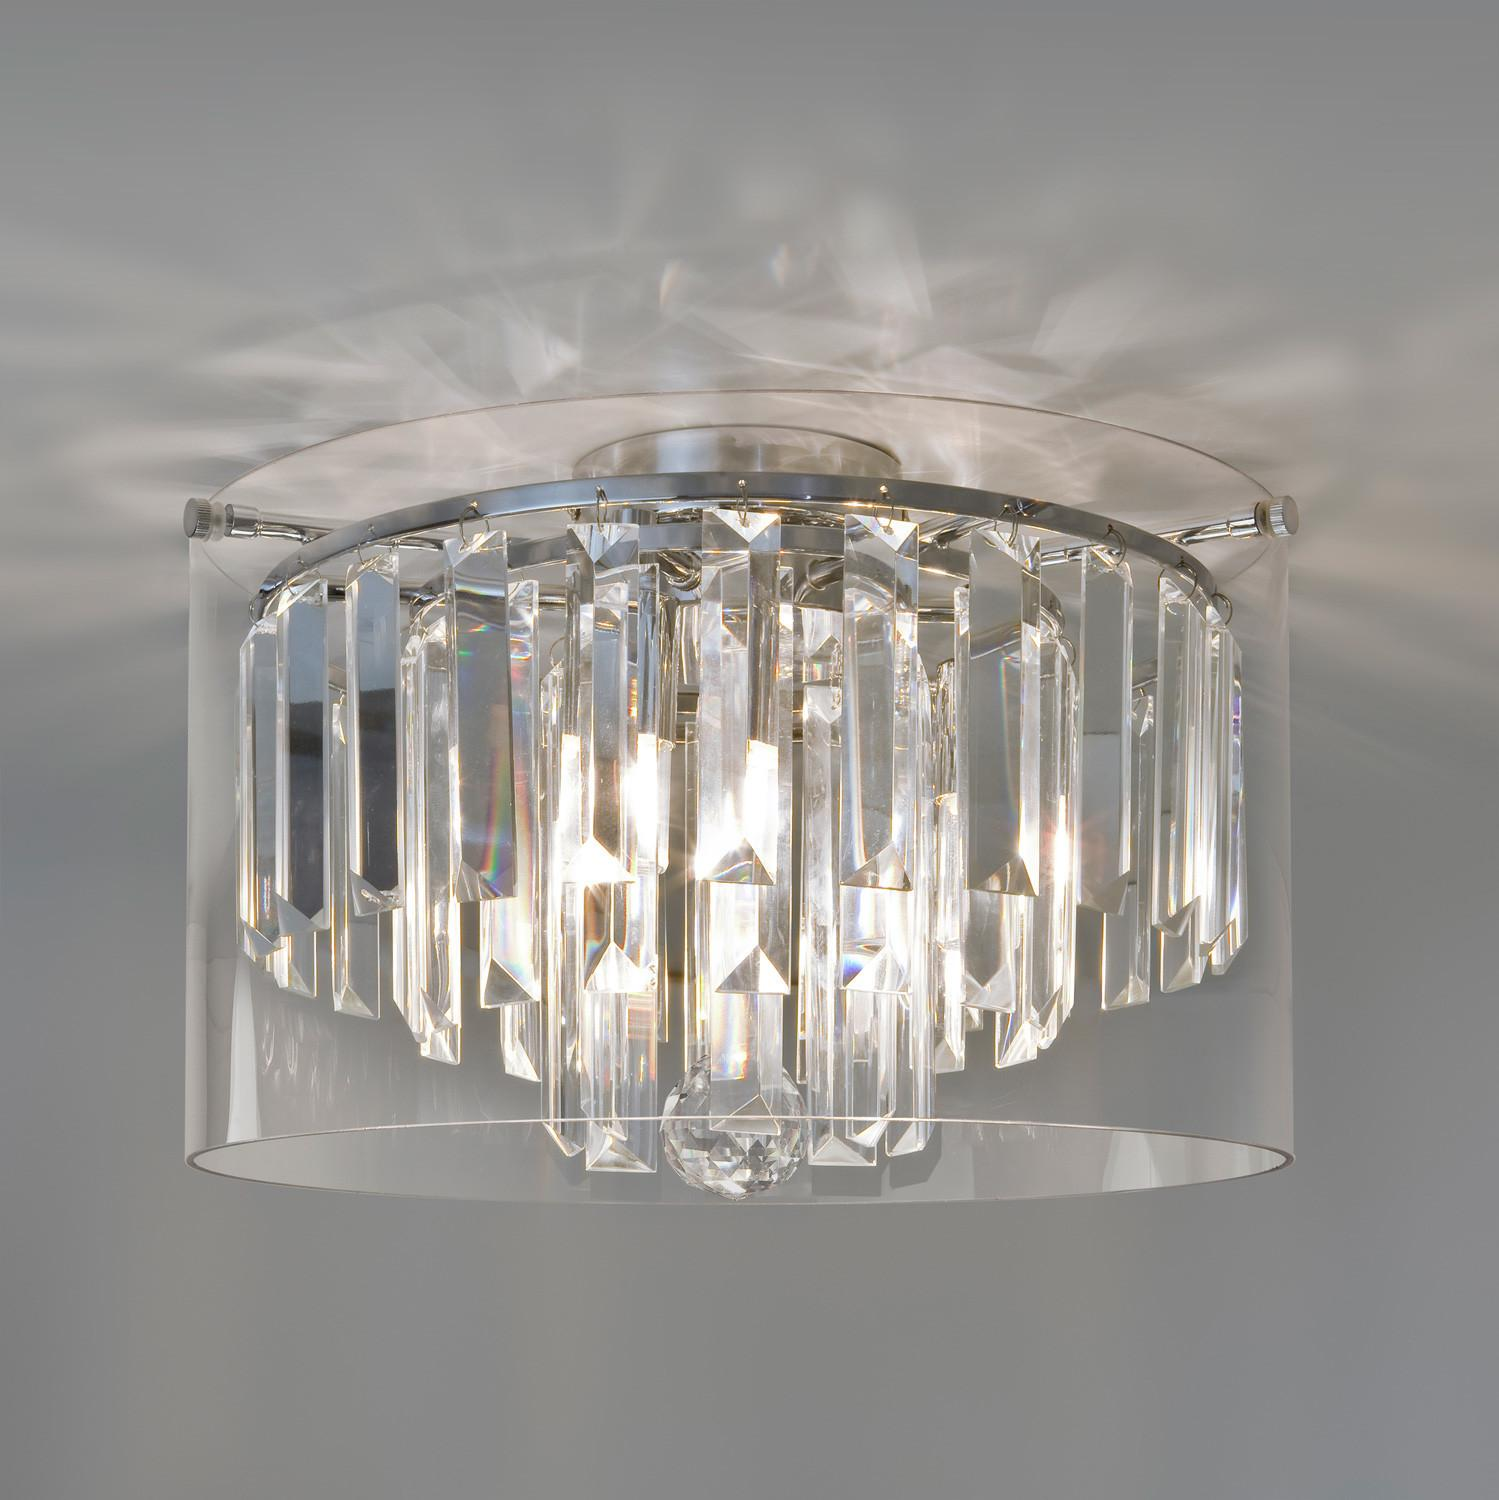 Astro Asini 7169 Bathroom Bedroom Chandelier Light 33w